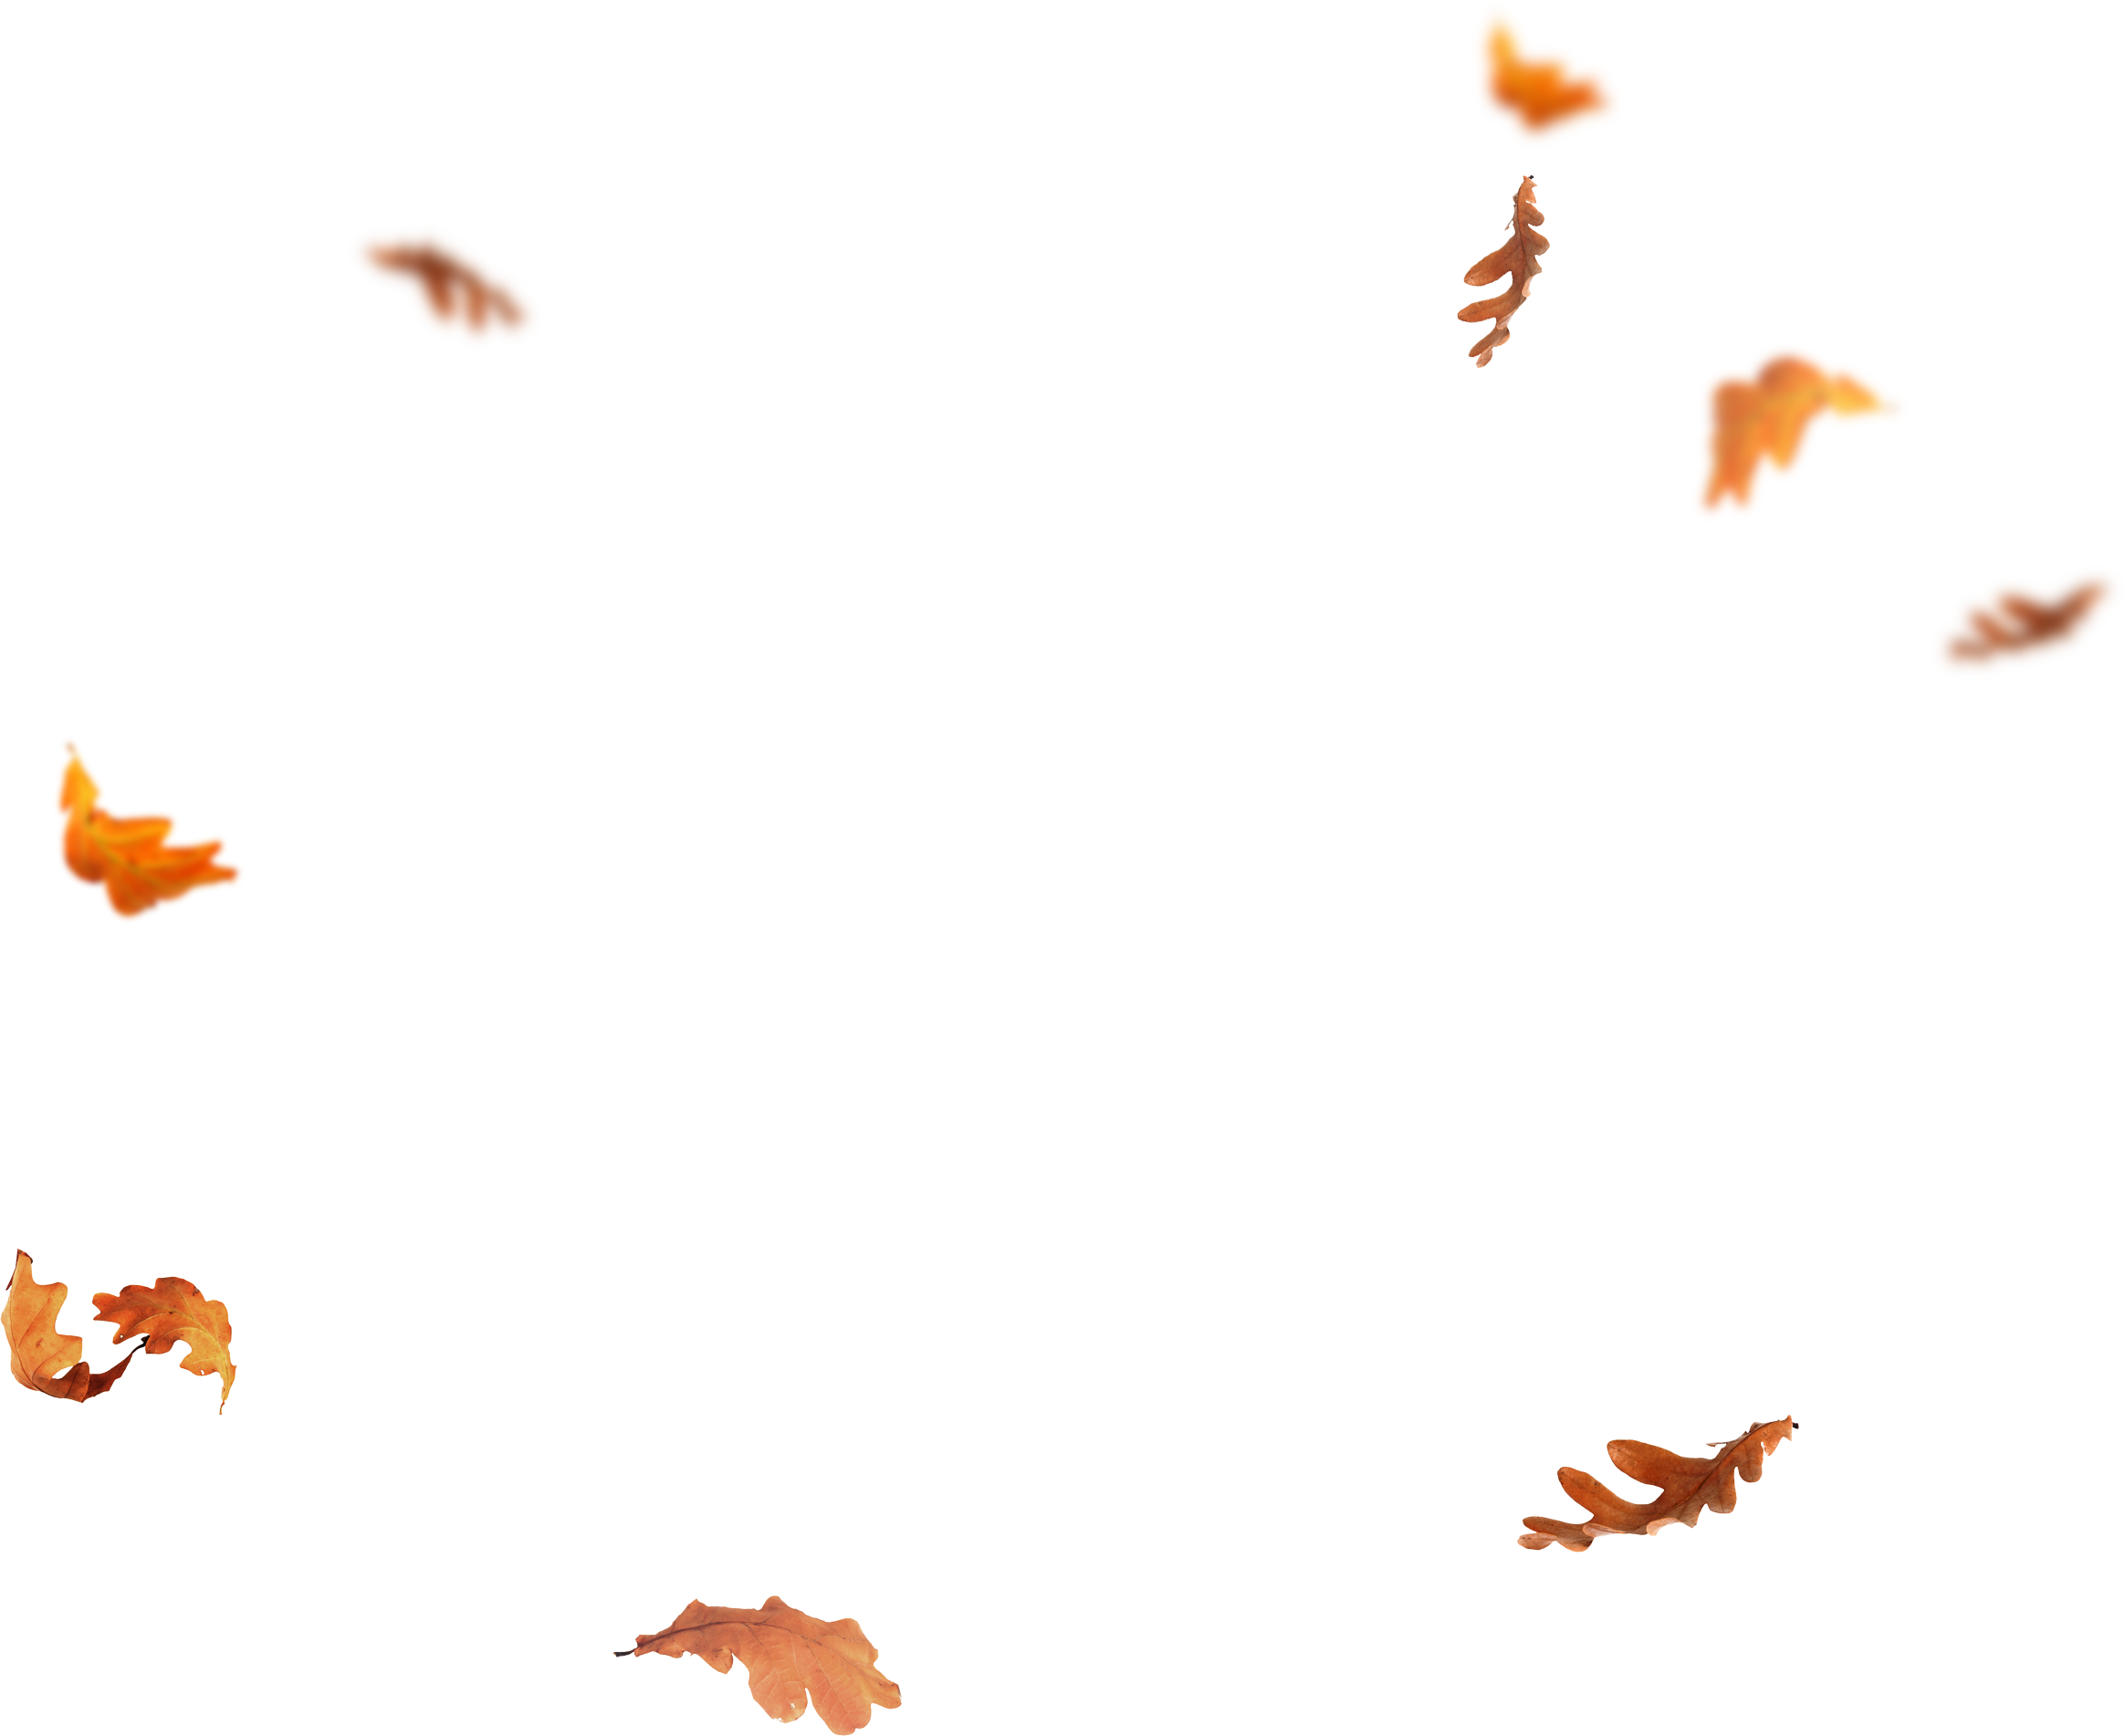 Download Falling Leaves Png Images Flying Autumn Leaf Png Free Fall Leaves Png Autumn Leaves Png Images